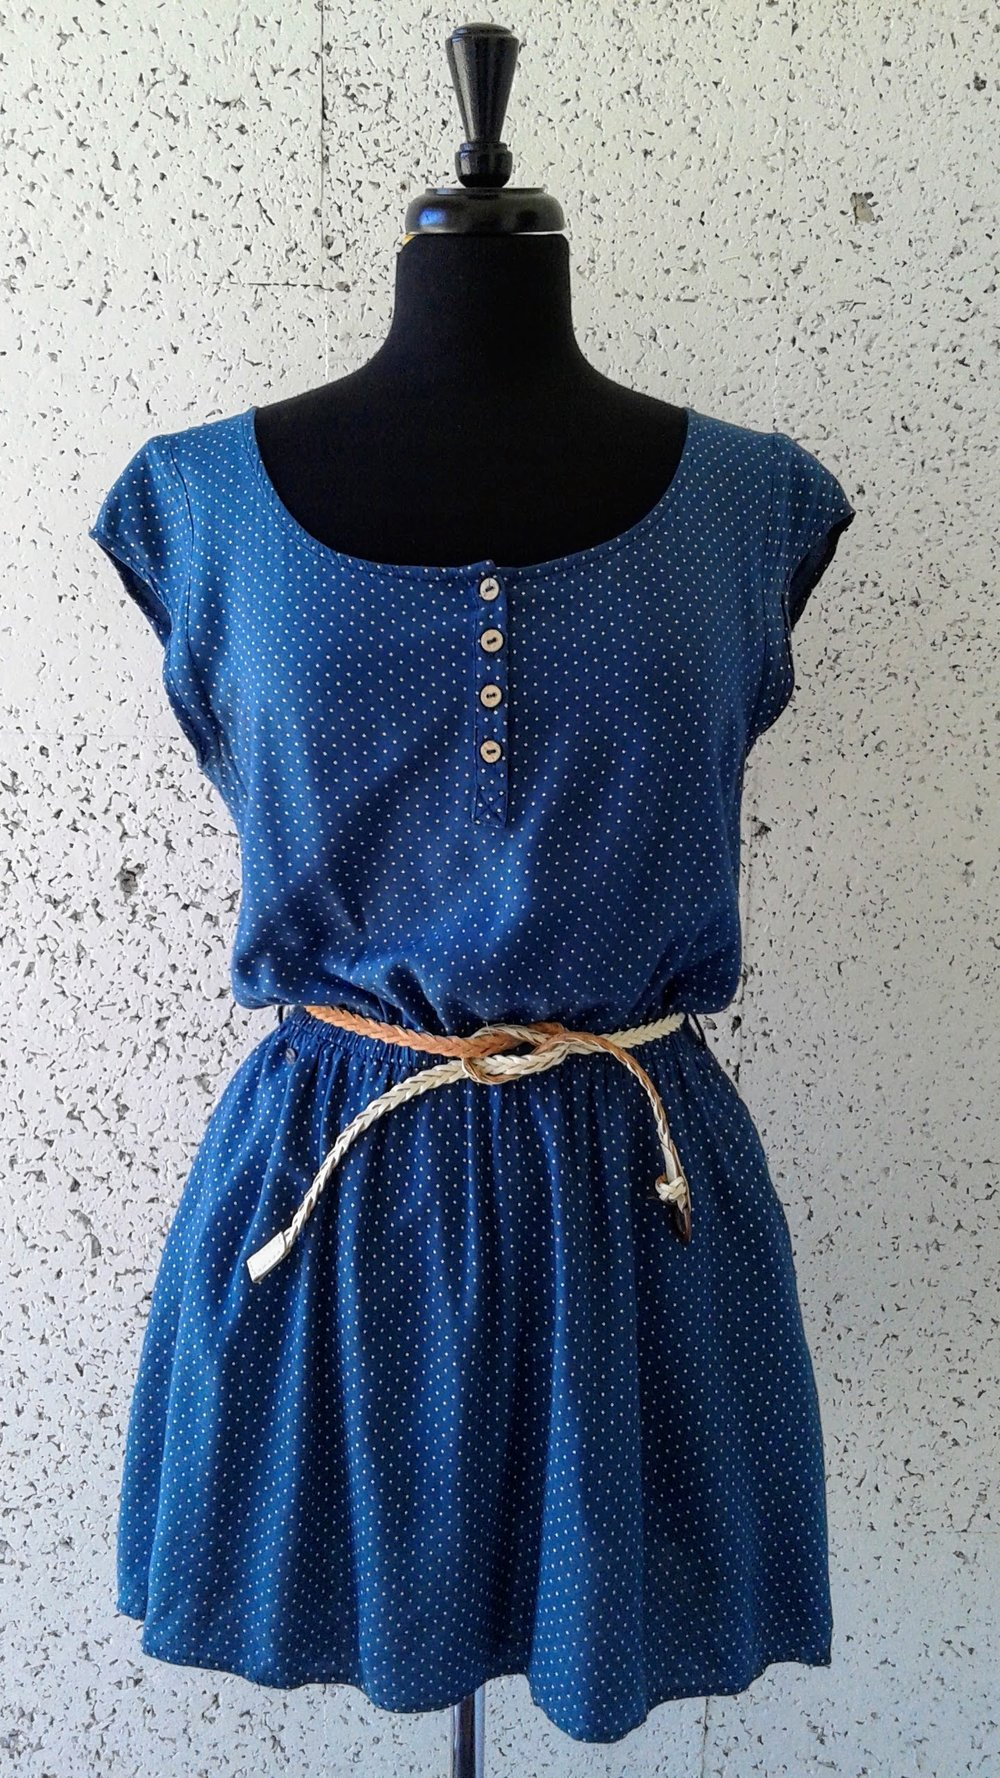 Ragwear dress; Size M, $24